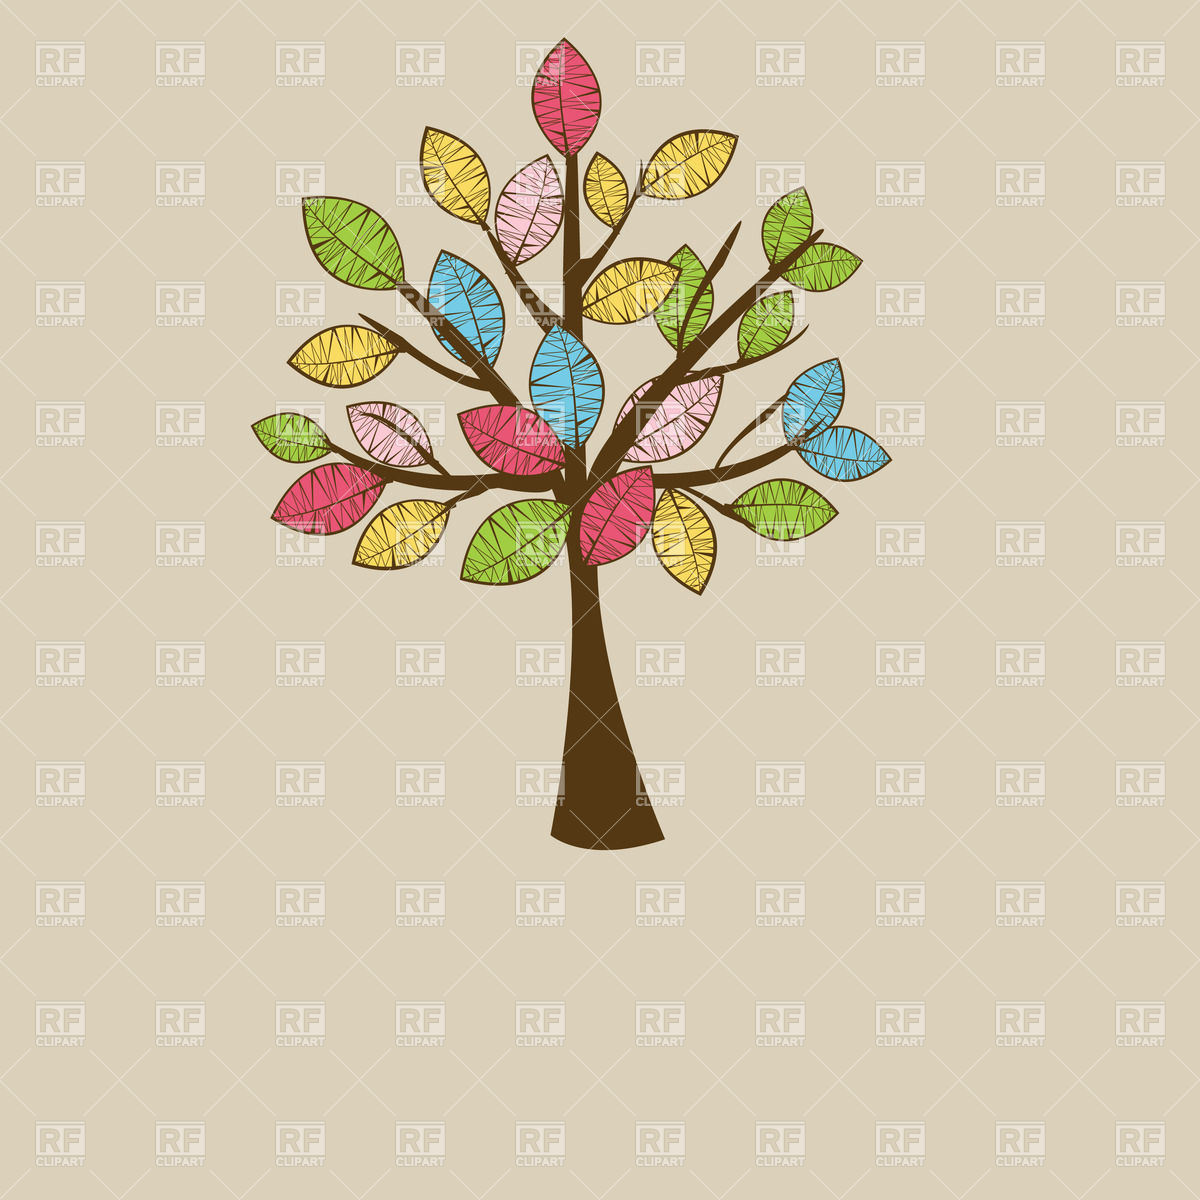 1200x1200 Beautiful Stylish Autumn Tree With Motley Leaves Vector Image